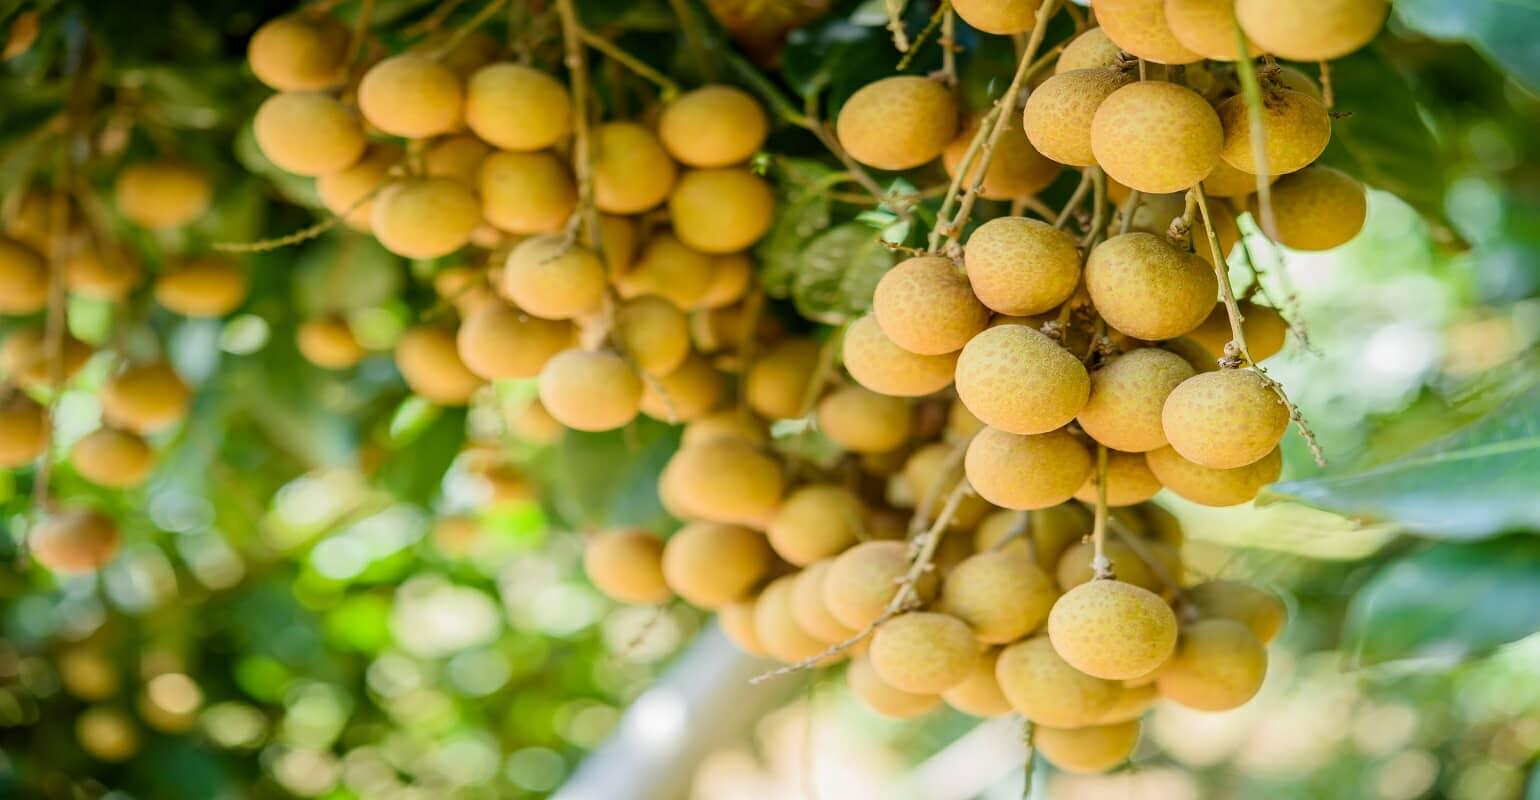 Longan and Safe agricultural products of Son La were warmly welcomed by Hanoi customers